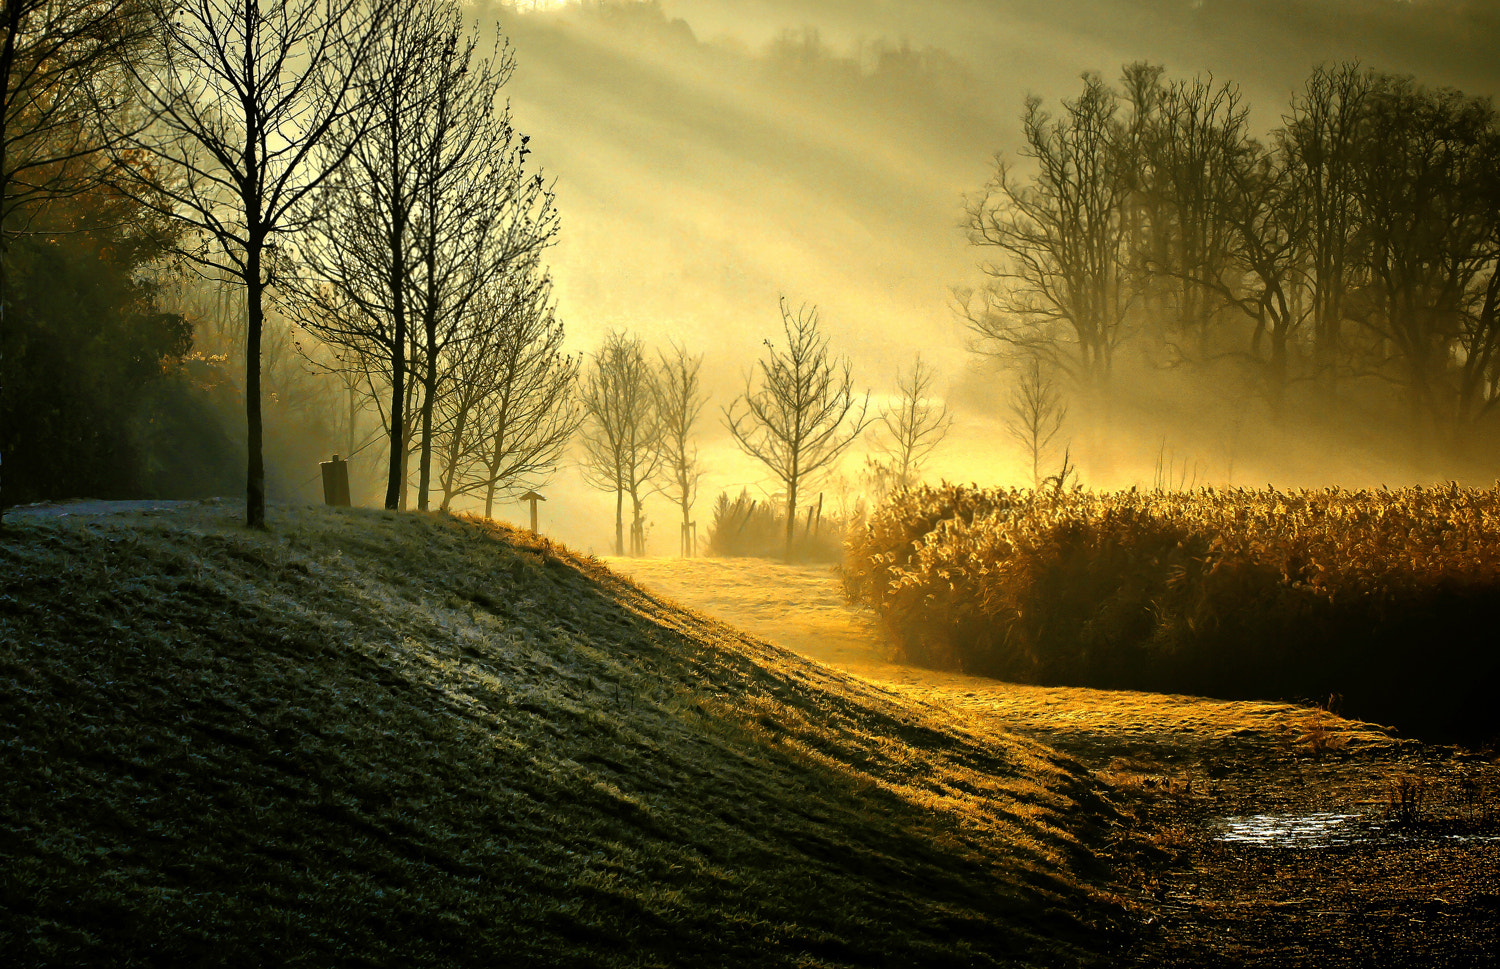 Photograph Morning rays by Andy 58 on 500px